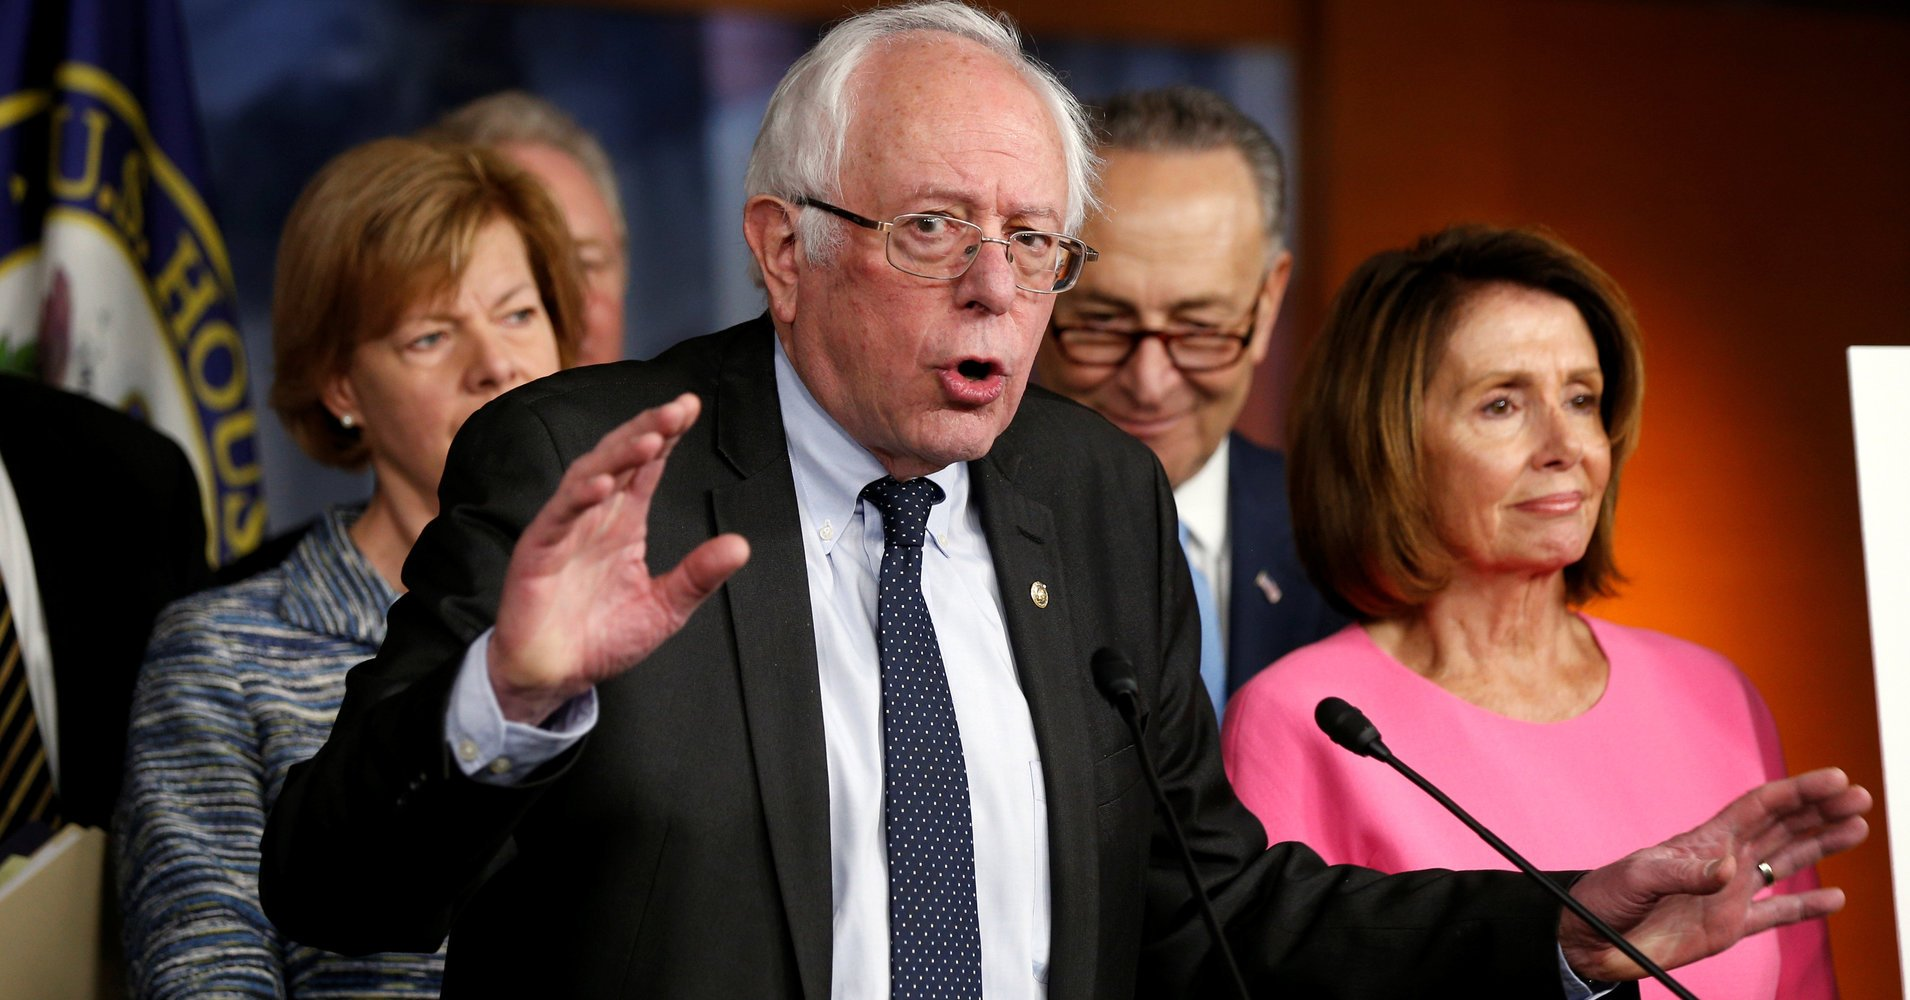 Bernie Sanders is taking on the foreign policy establishment by @AkbarSAhmed https://t.co/kGXGOWS3I8 https://t.co/KRmyGL1JOc